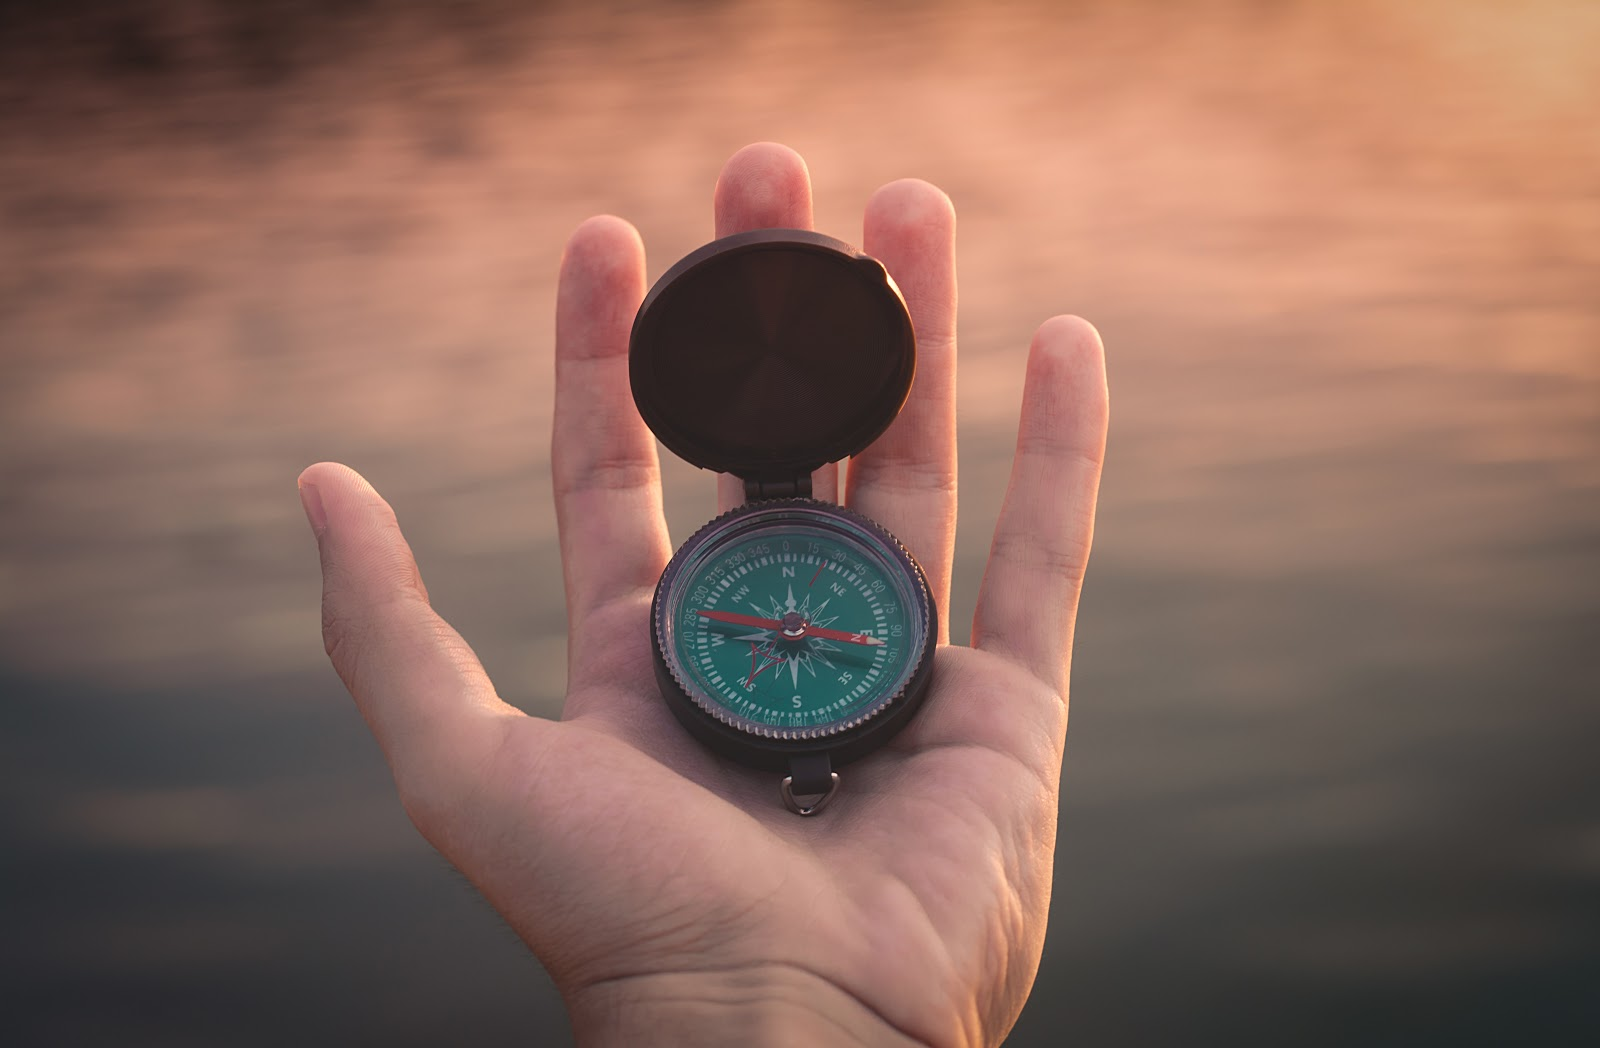 Hand holding a compass, illustrating the idea of knowing how to proceed to prepare for consulting interviews